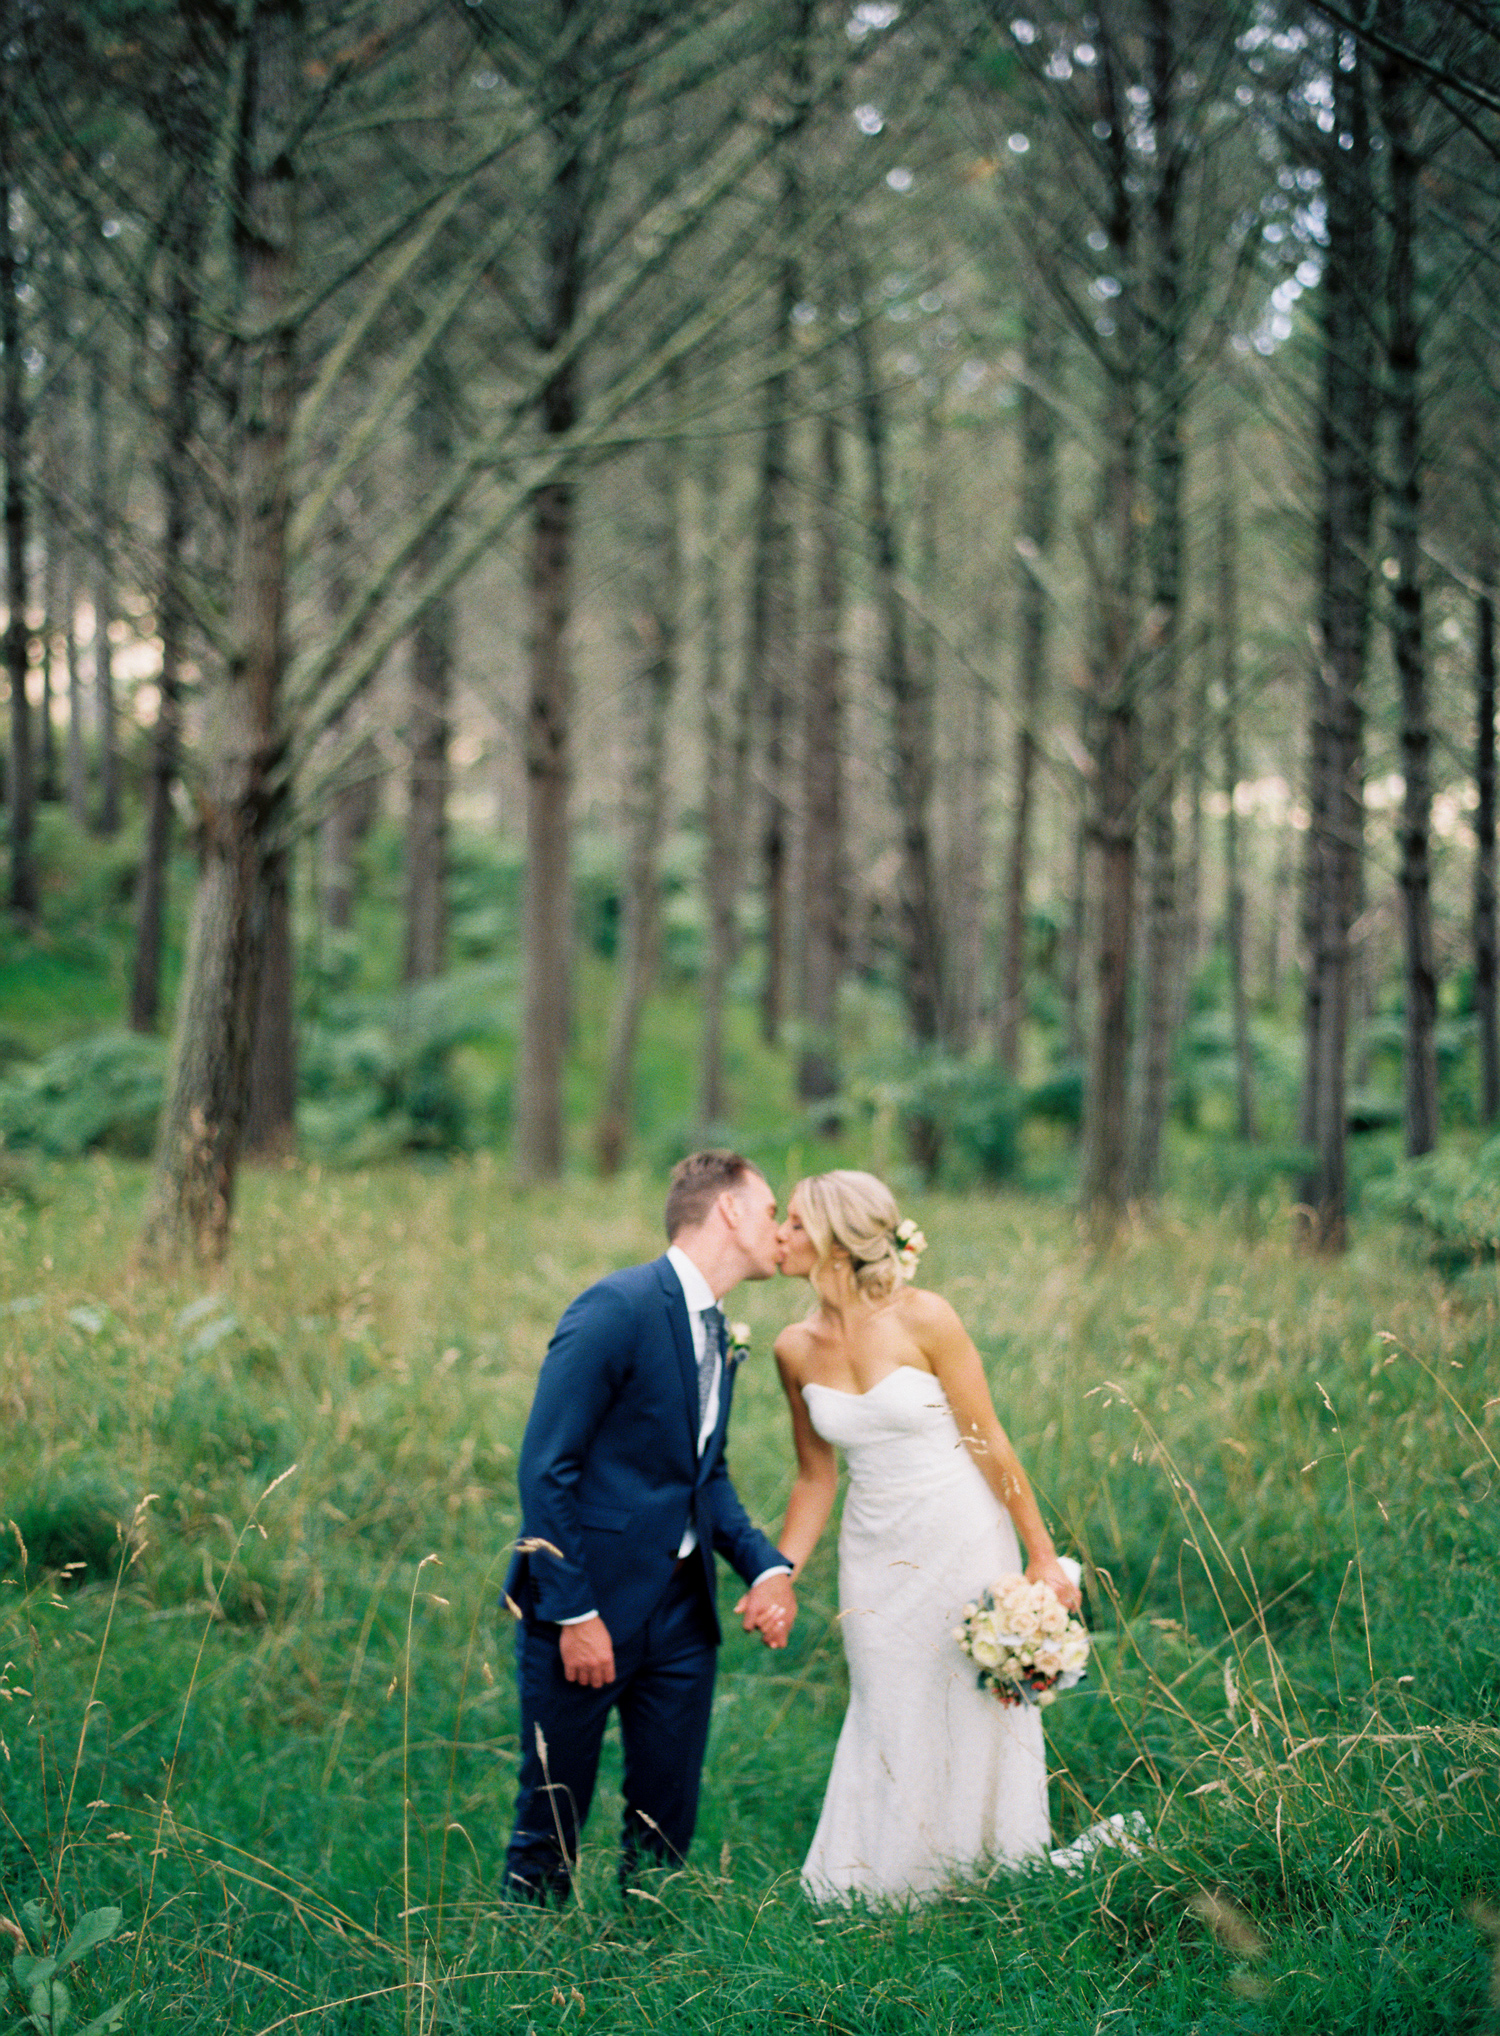 new-zealand-wedding-film-photographer-ryan-flynn-0023.JPG